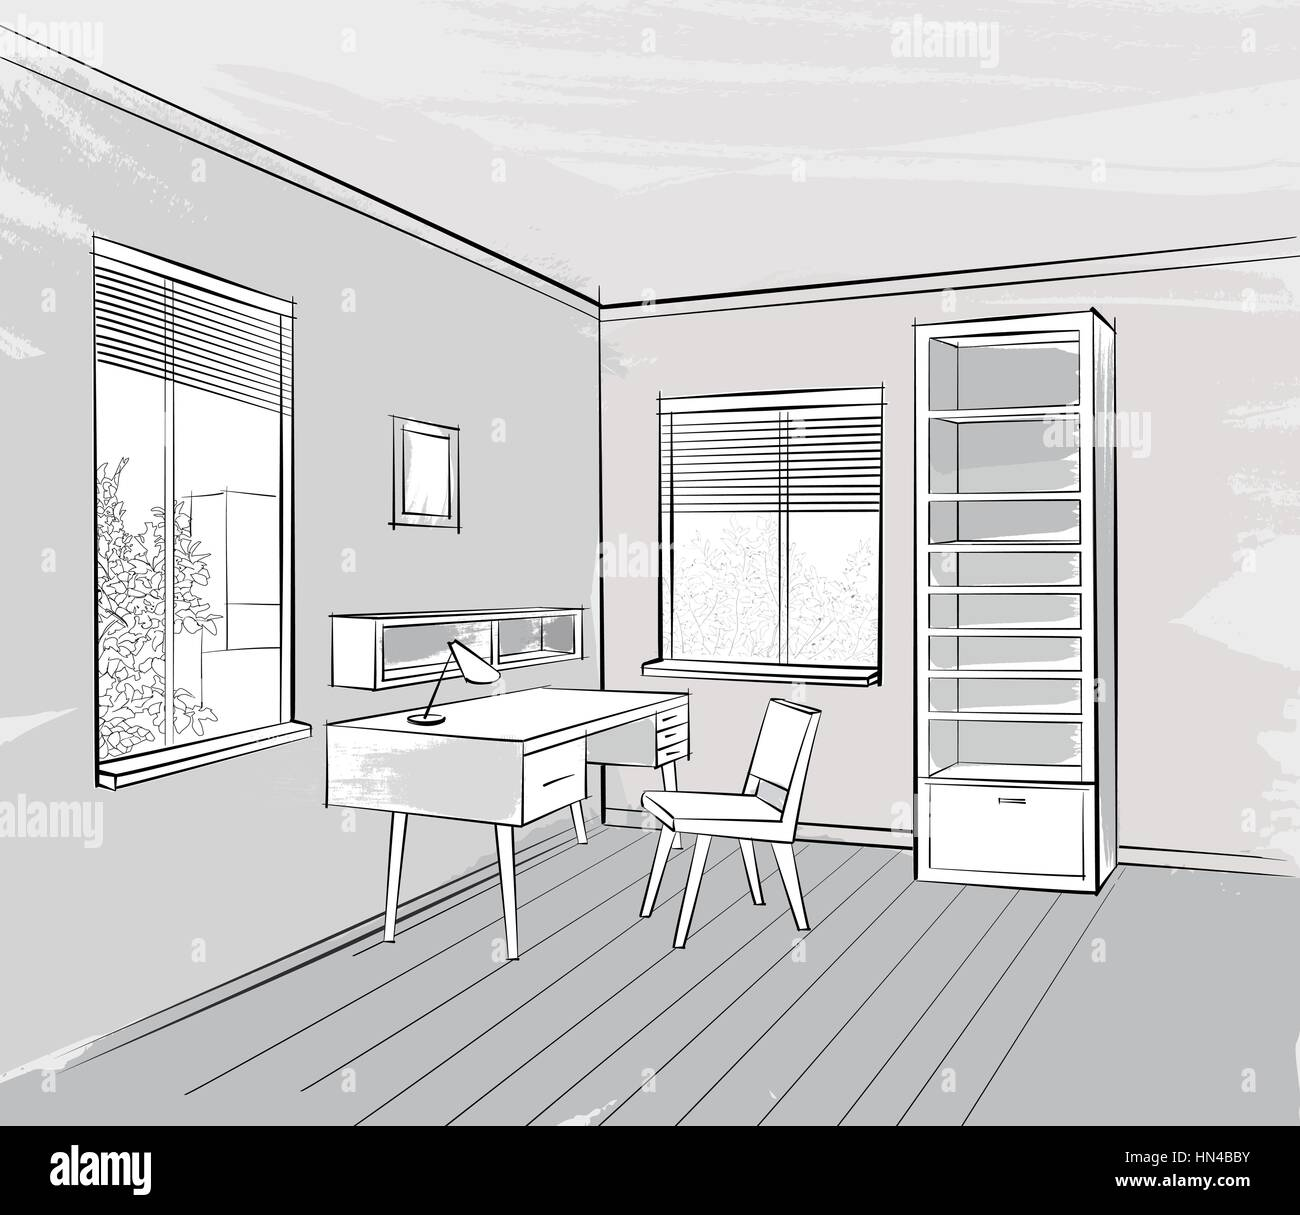 Sketch of interior. Beautiful room. Cabinet room furniture - Stock Vector